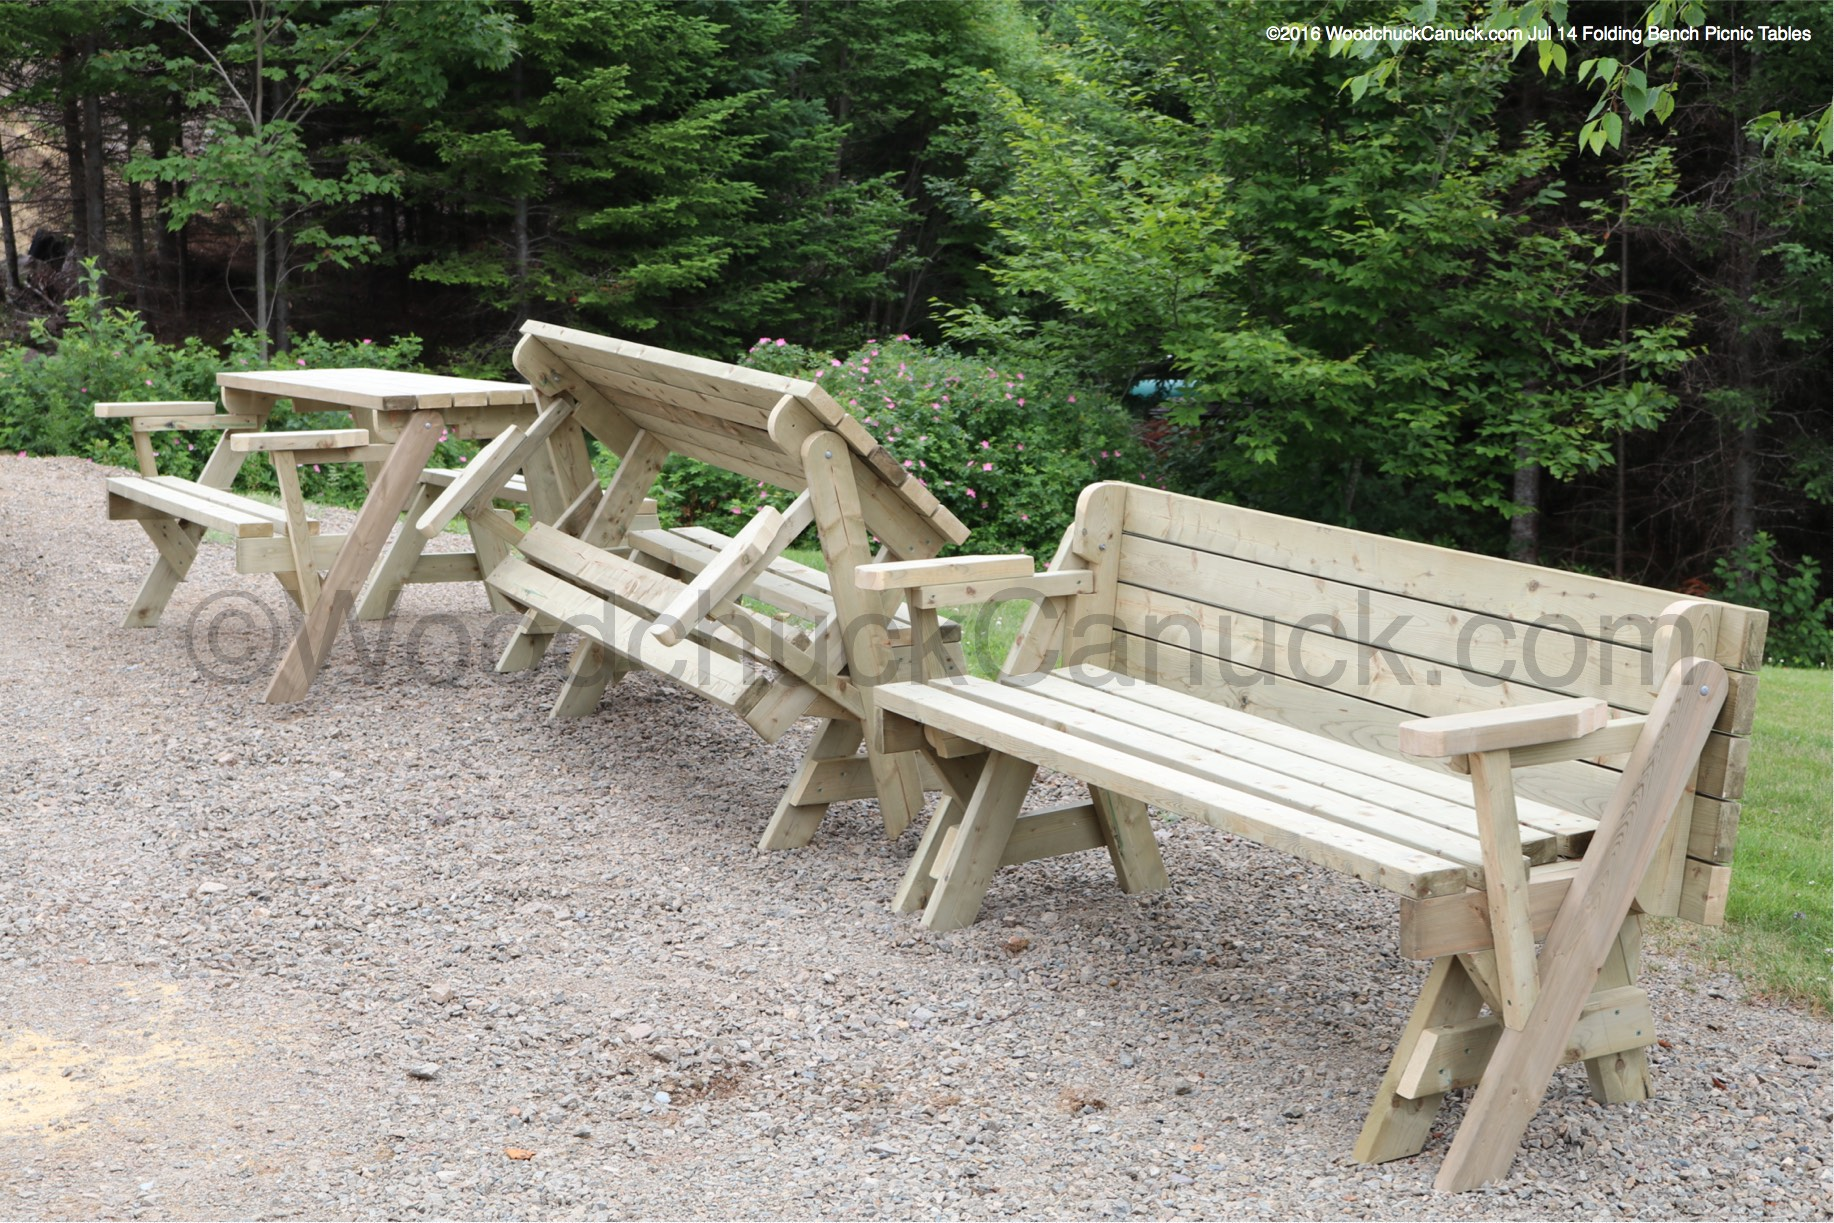 folding bench picnic table. Black Bedroom Furniture Sets. Home Design Ideas